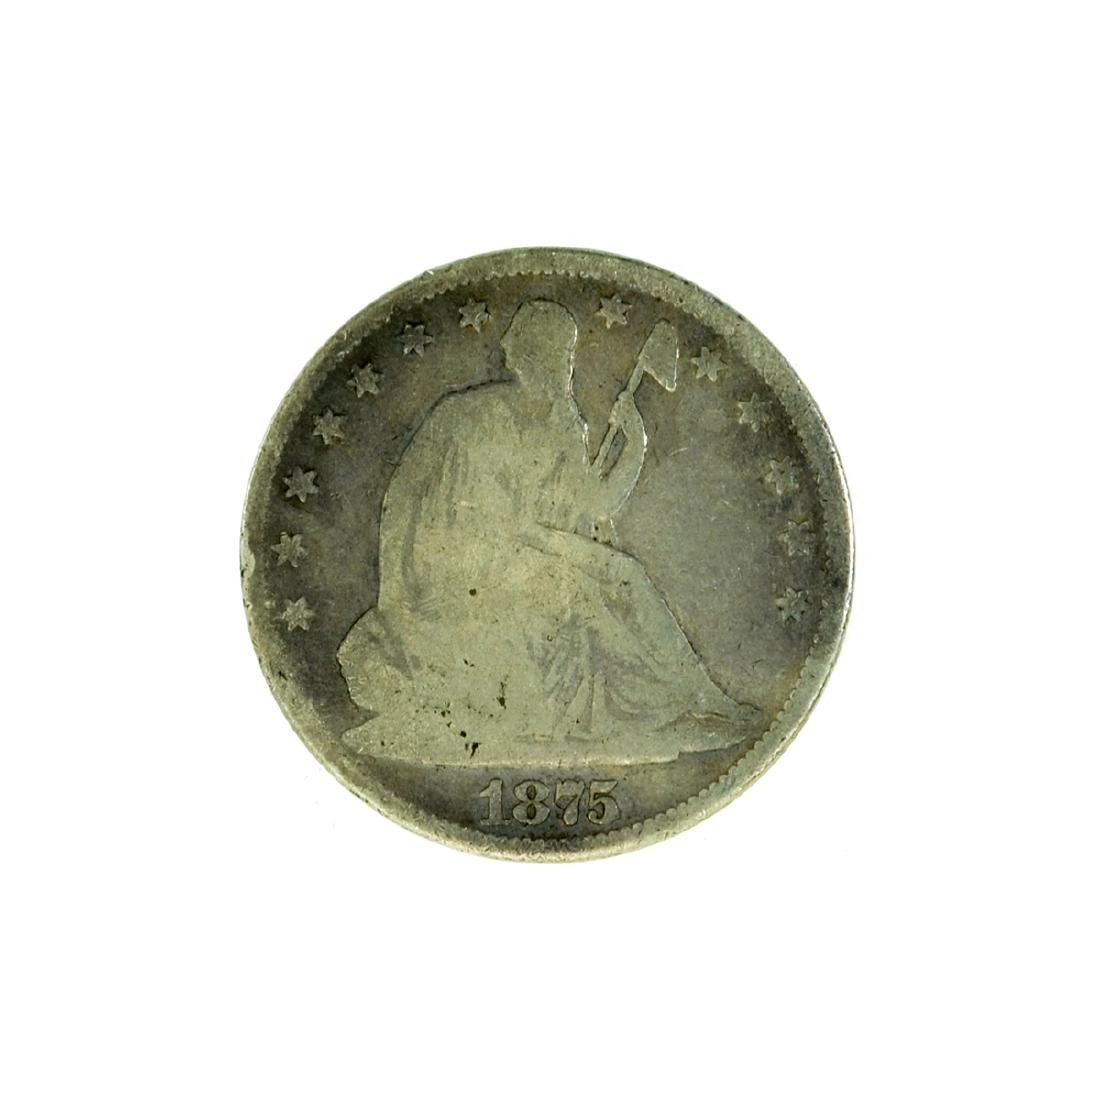 *1875 Liberty Seated Half Dollar Coin (JG)